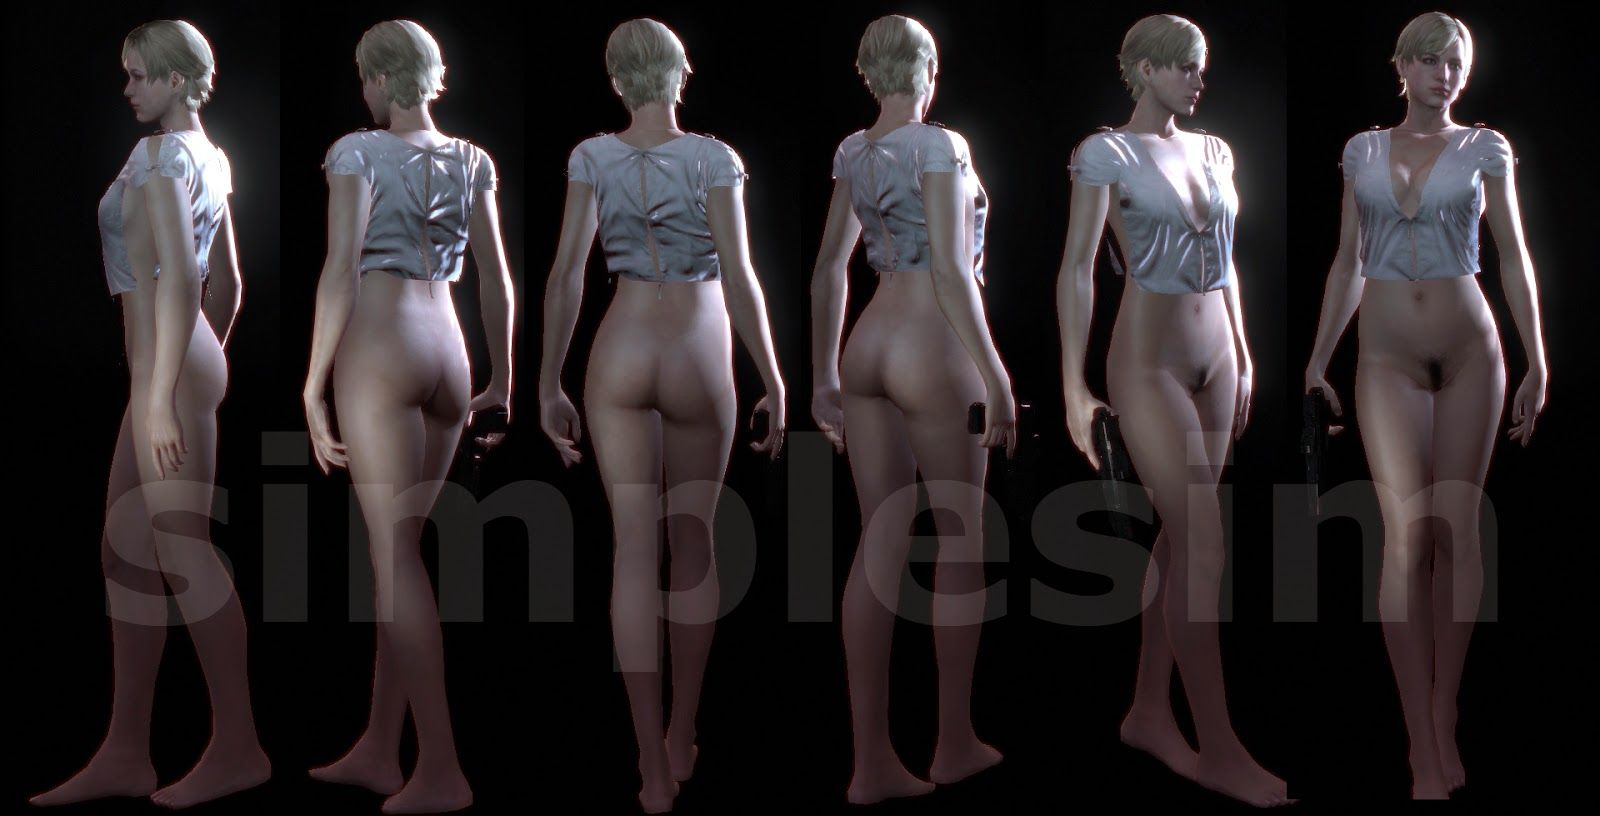 Mod re5 nude nude galleries